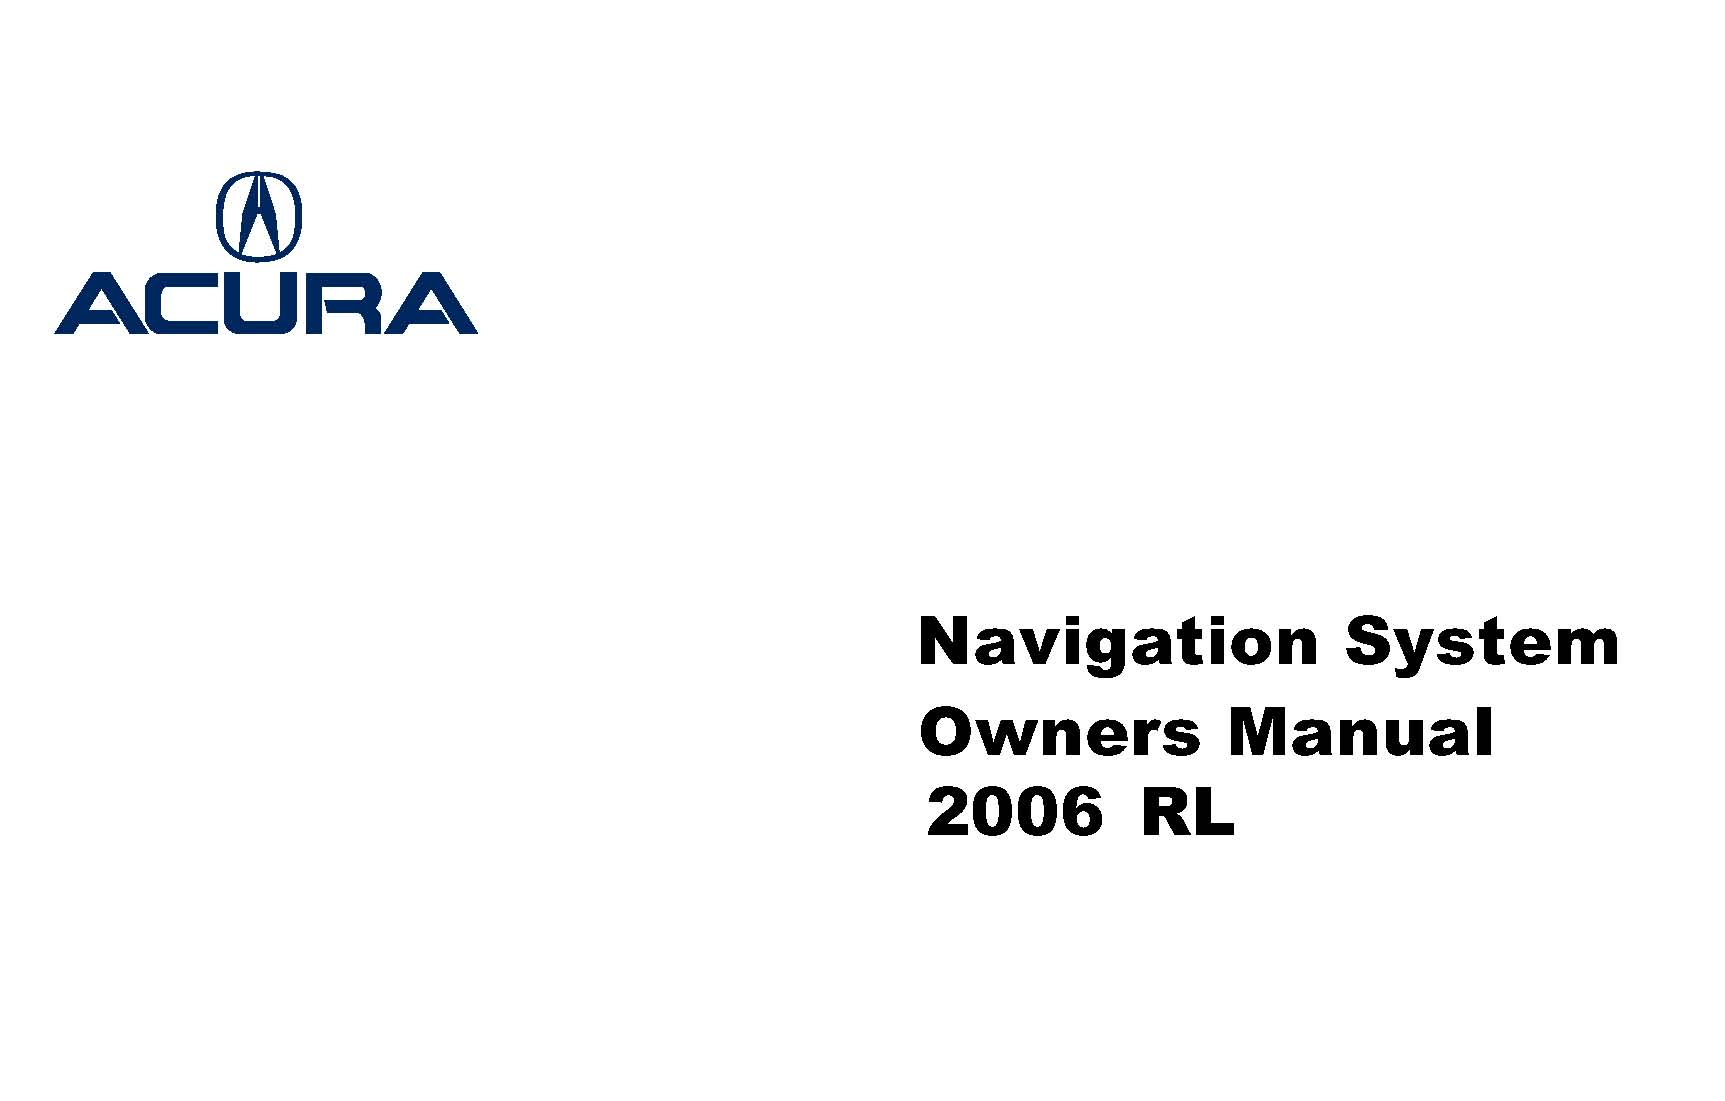 2006 ACURA RL OWNERS MANUAL PDF